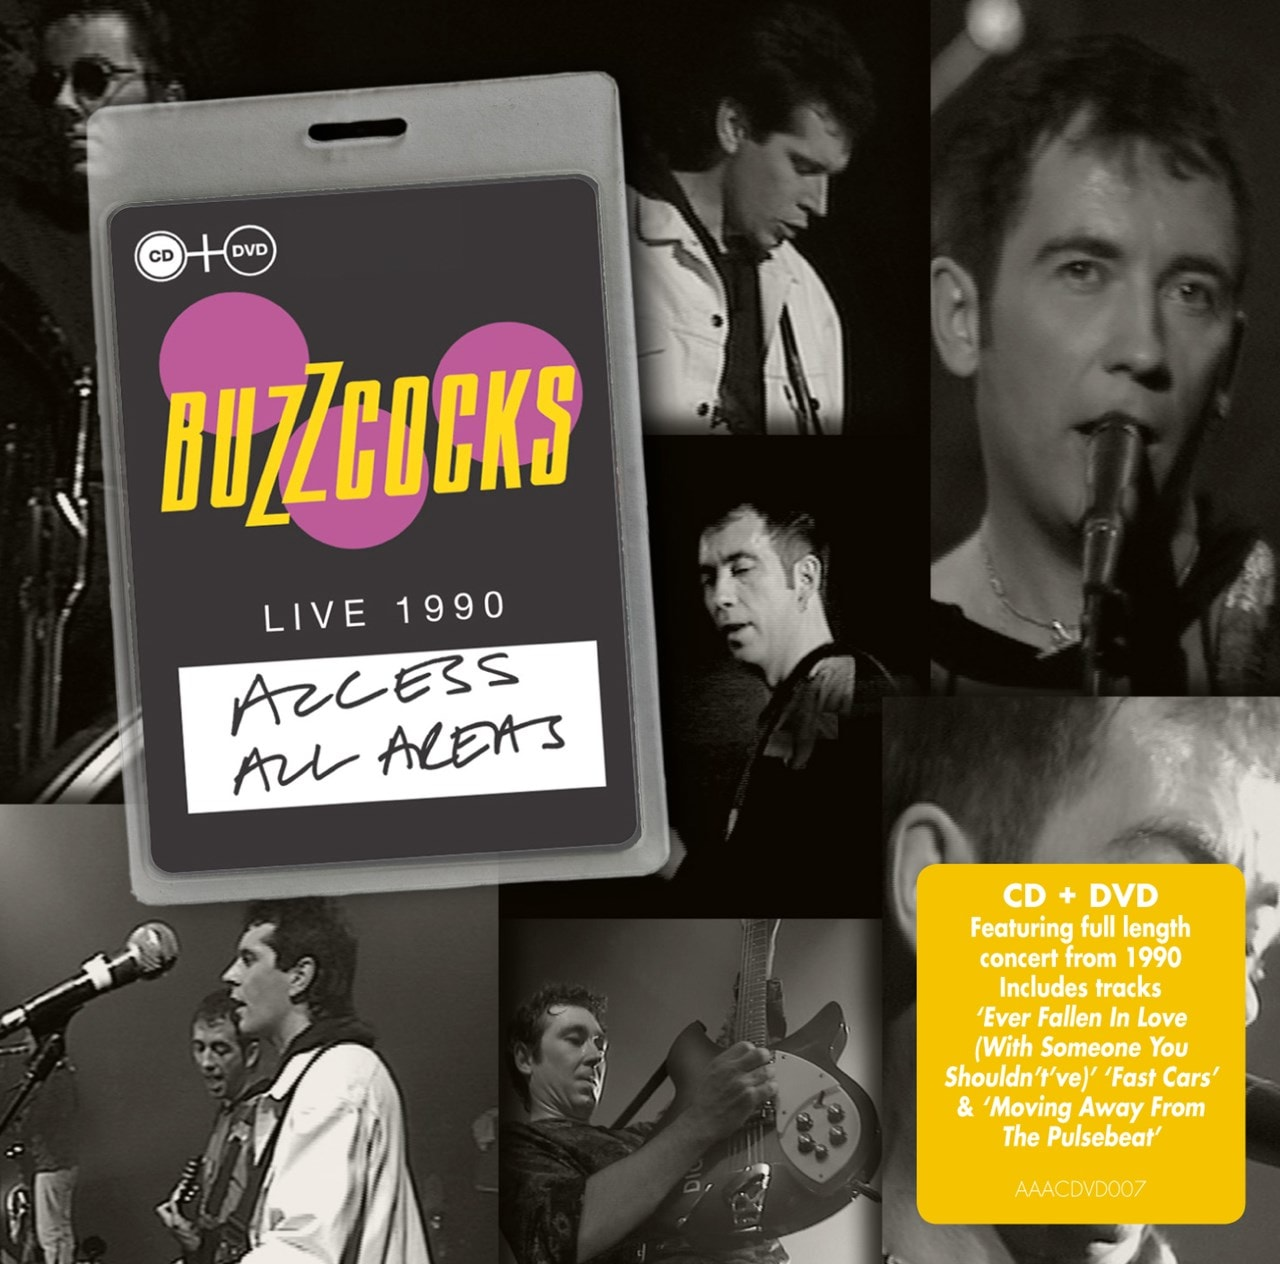 Access All Areas: Live 1990 - 1